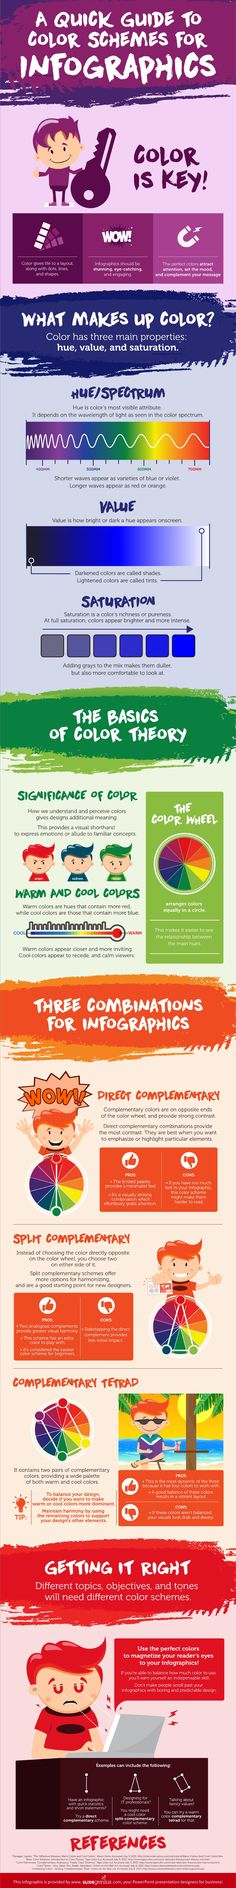 A Quick Guide To Color Schemes For Infographics - @visualistan